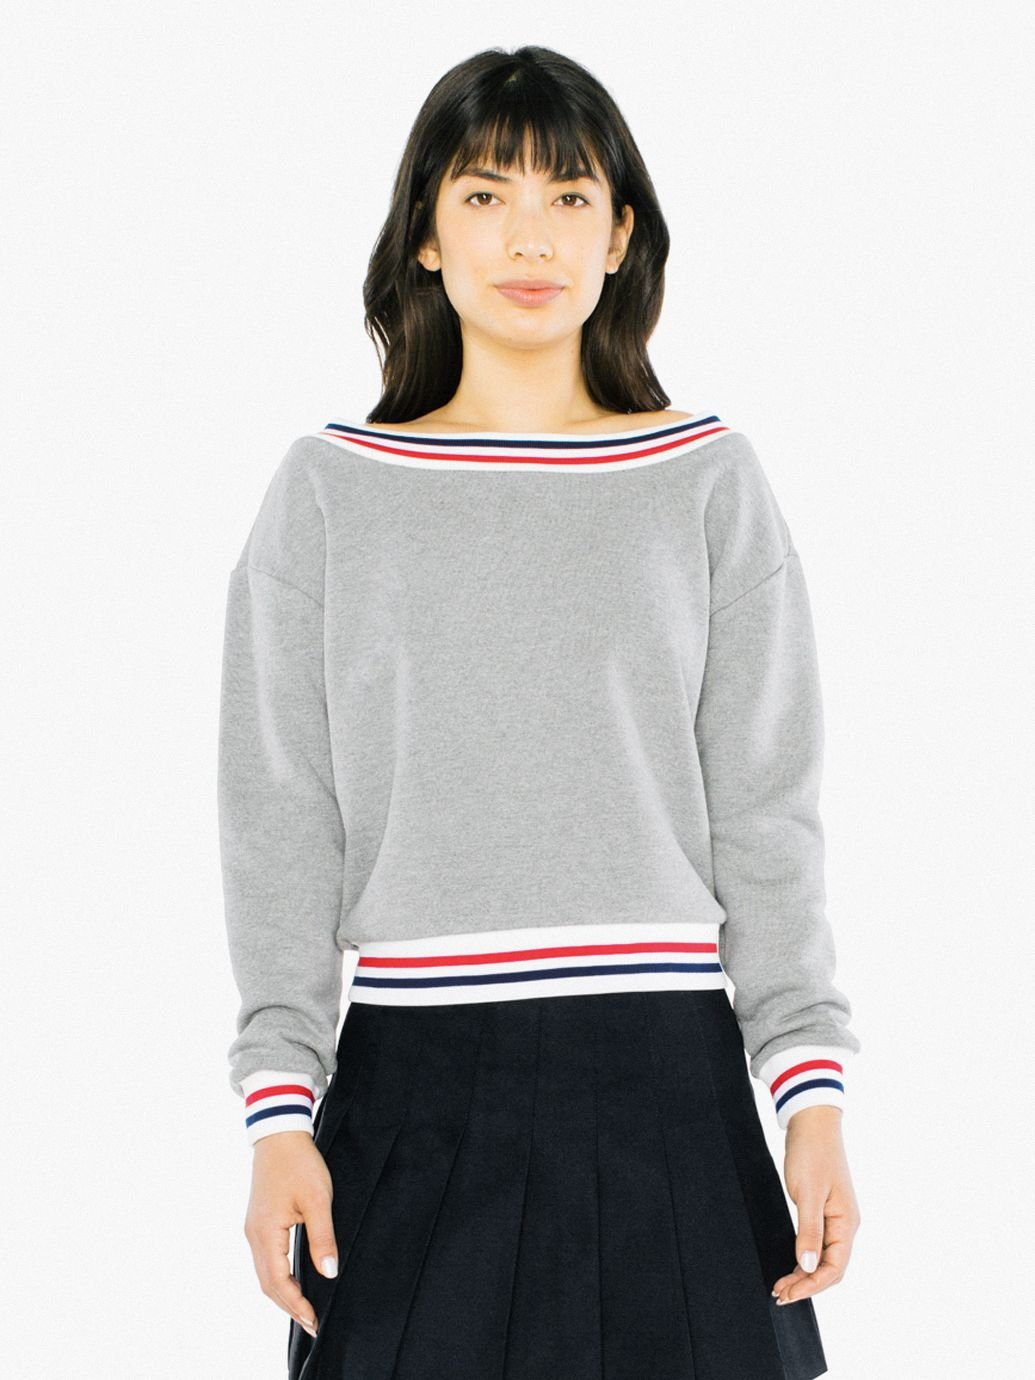 Women's Heavy Terry Sport Sweatshirt in Zinc/Navy Blue/Red Size Small, Cotton by American Apparel